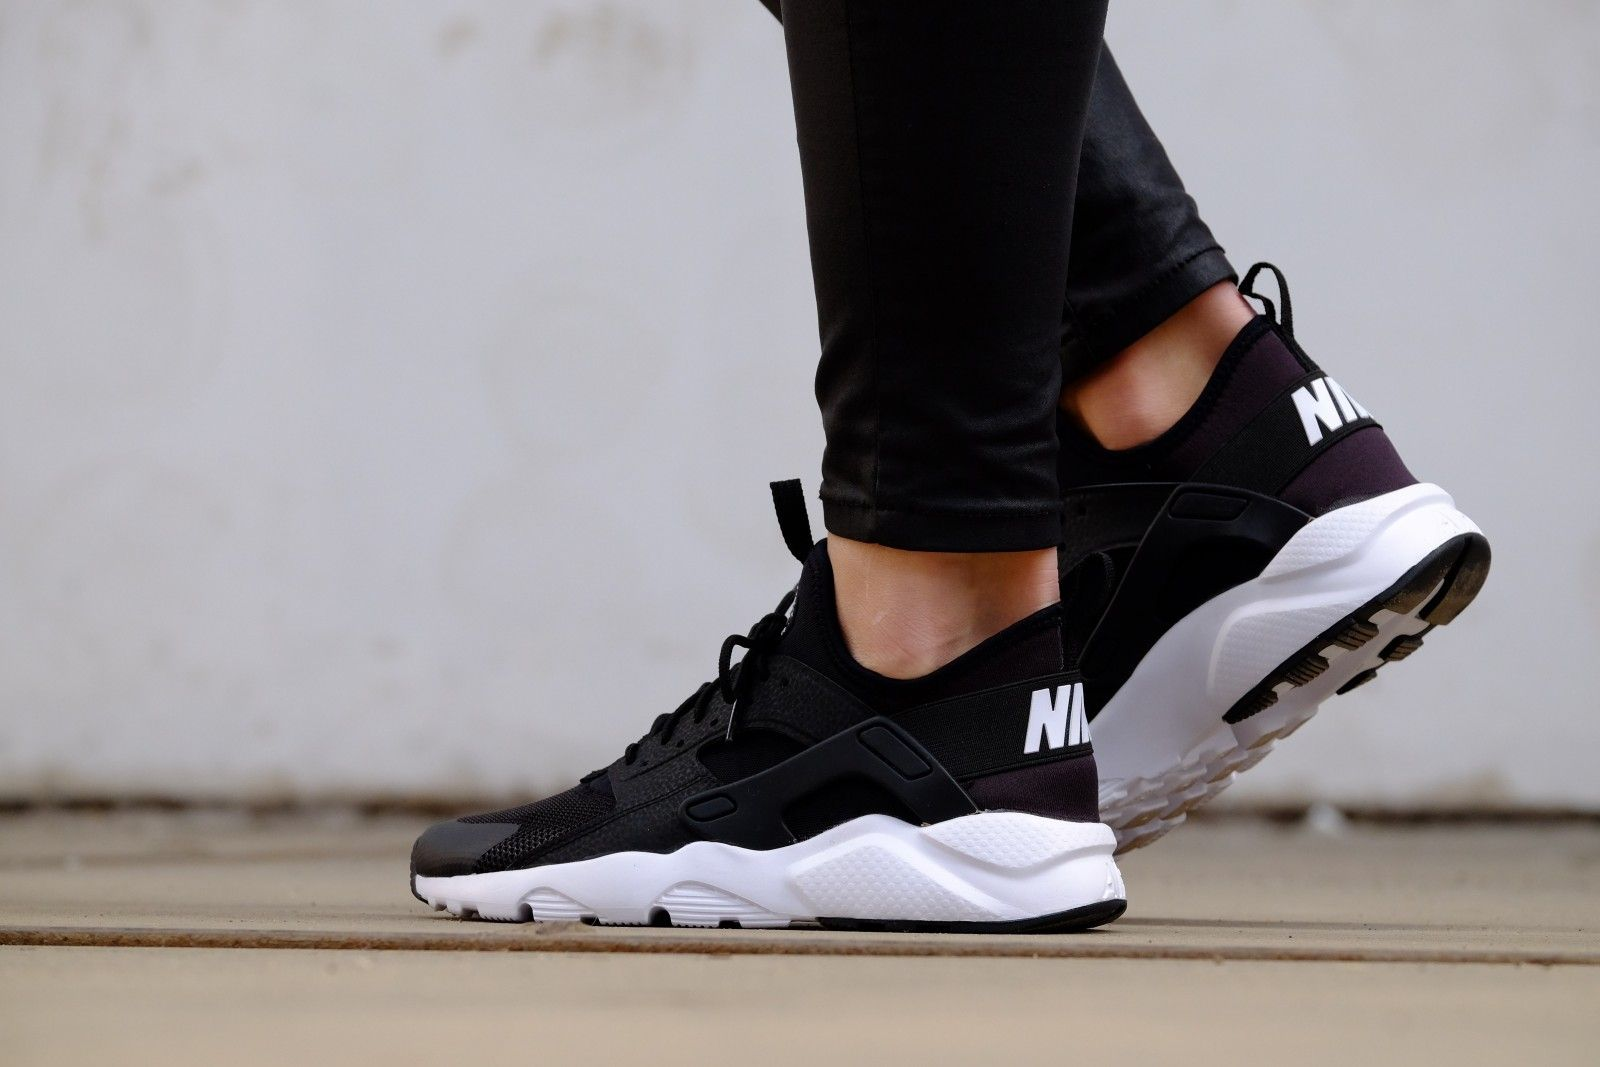 uk availability 86d69 936cc Nike Air Huarache Run Ultra GS Black  White - 847569-002